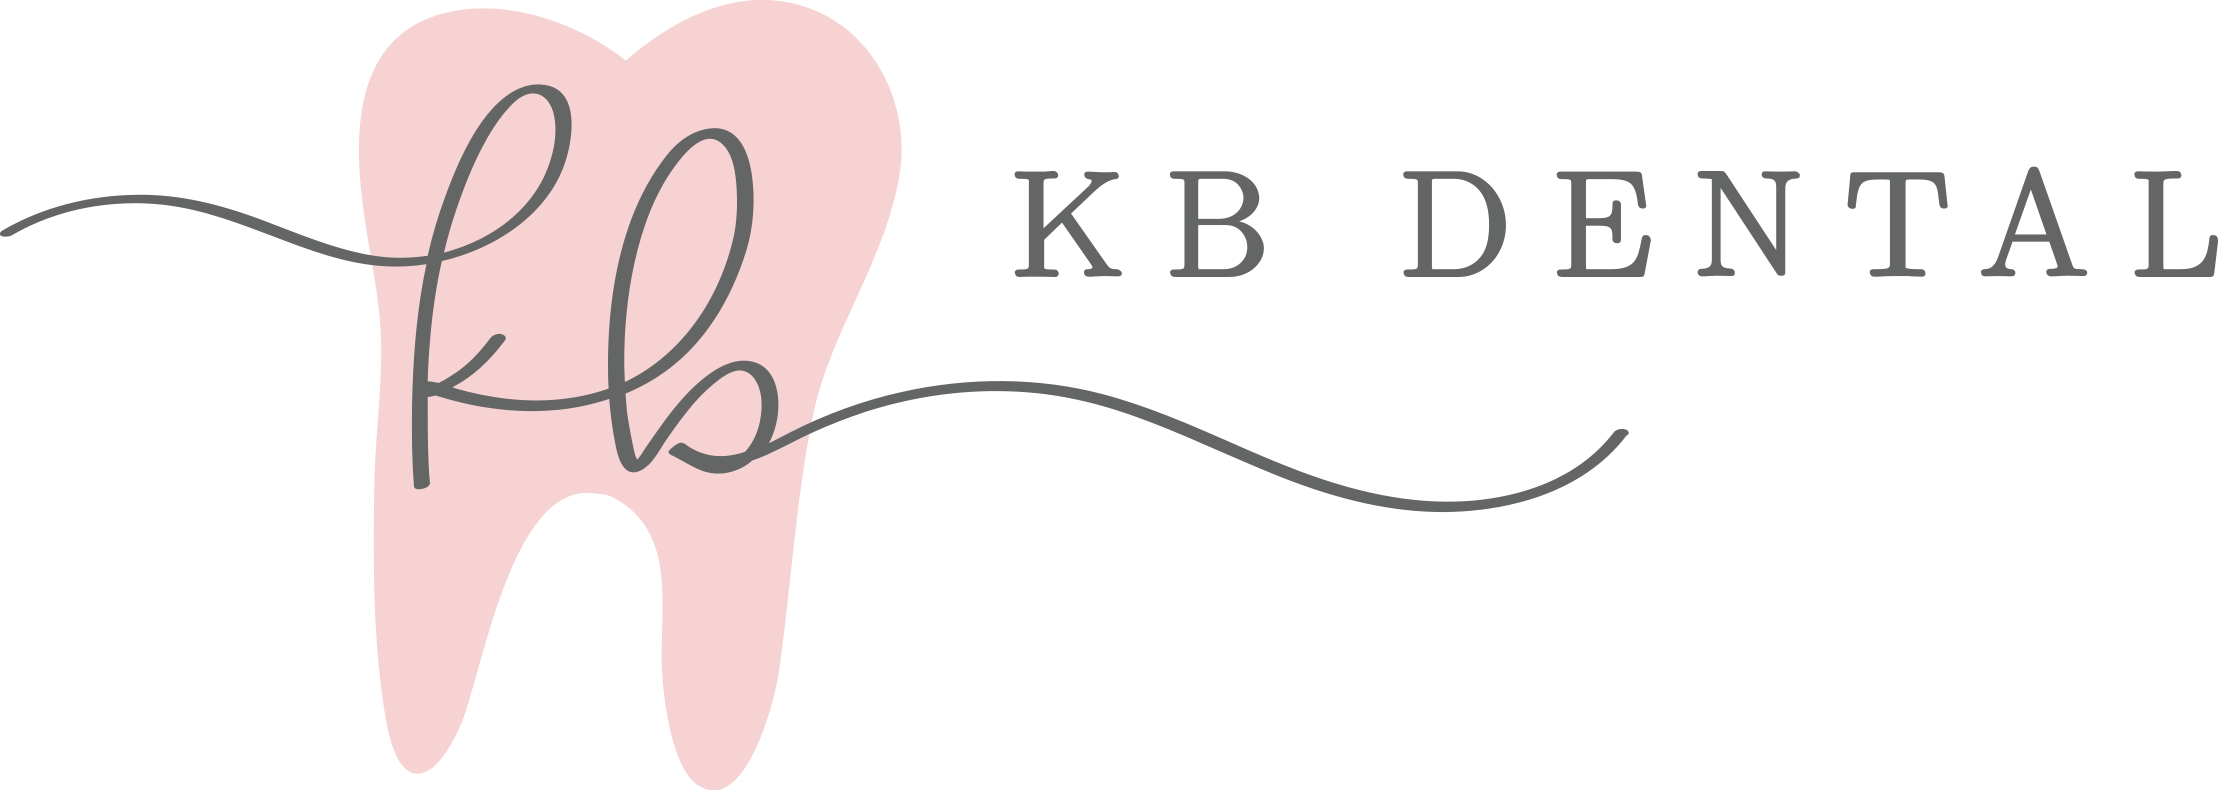 Dentist In Heath, TX, KB Dental By Dr. Karina Bartz, Uses Relaxed Atmosphere To Treat Patients With Dental Anxiety